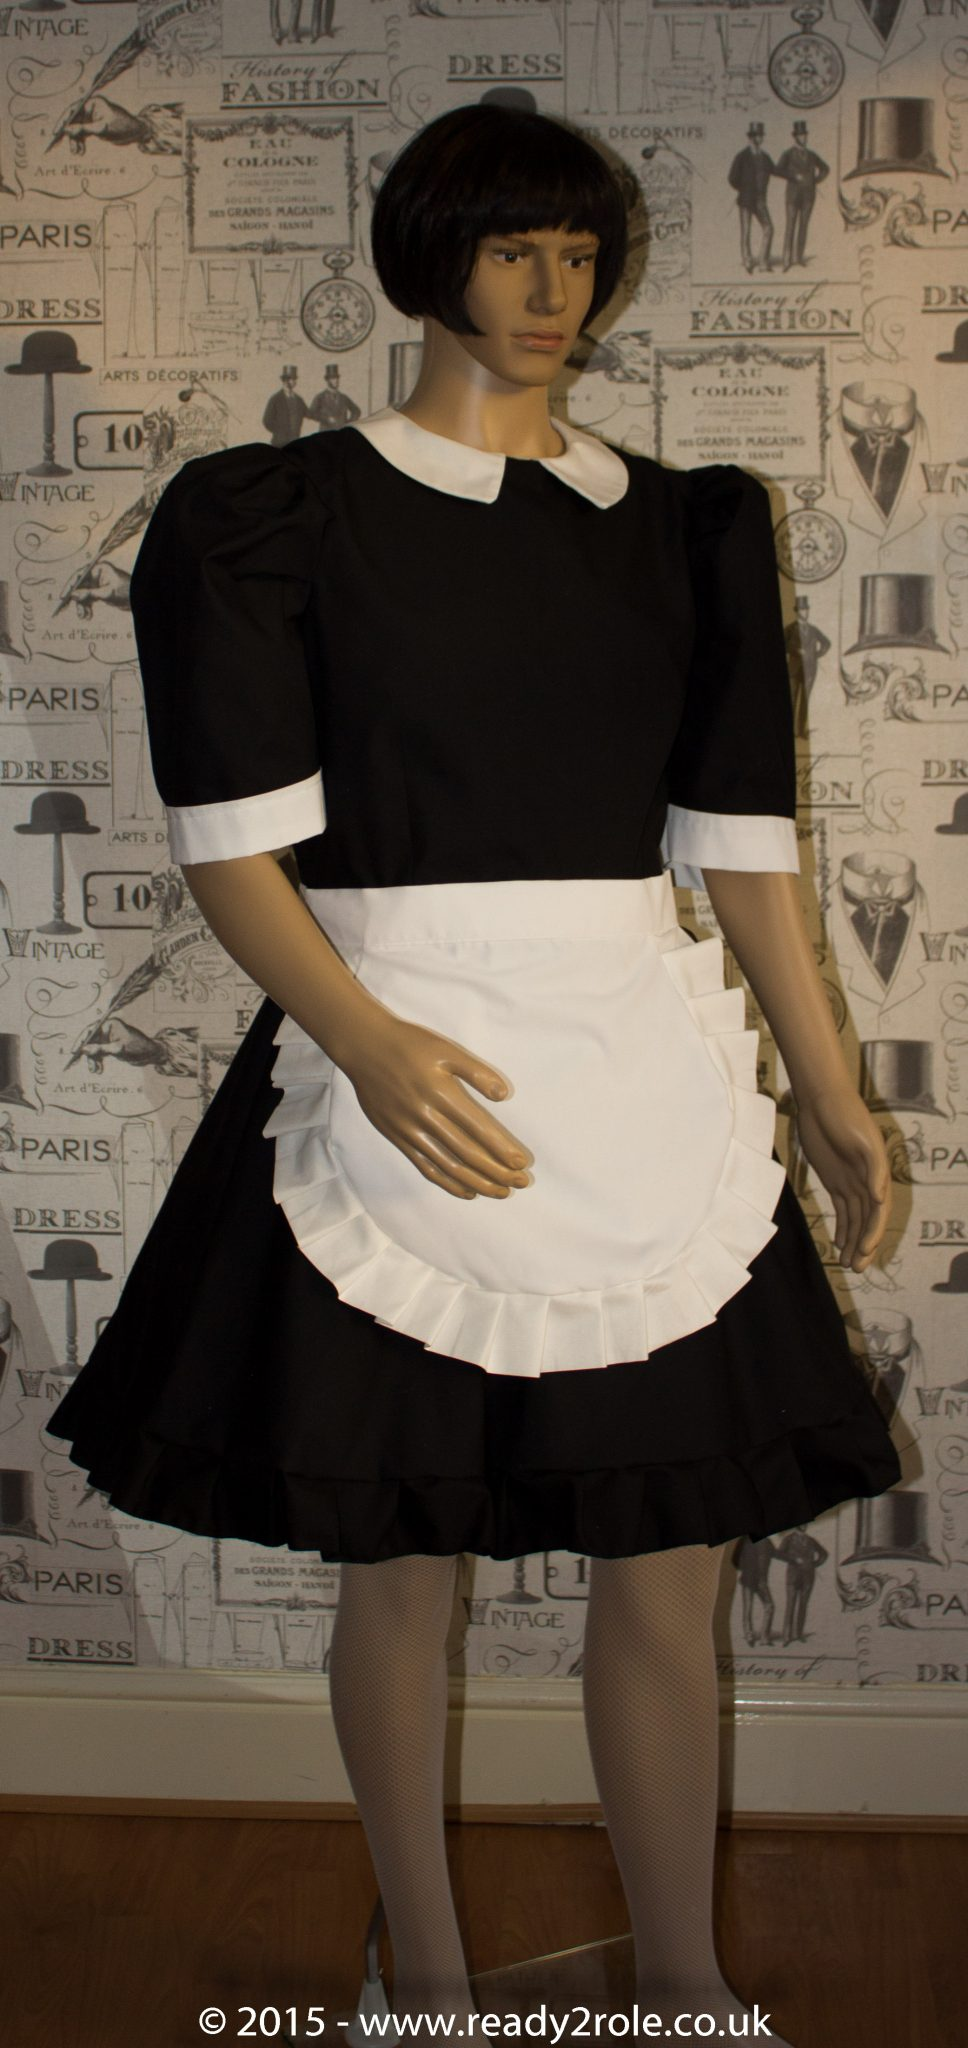 FPJ Maid to Serve – Cotton Sissy Maid Dress With Half Apron